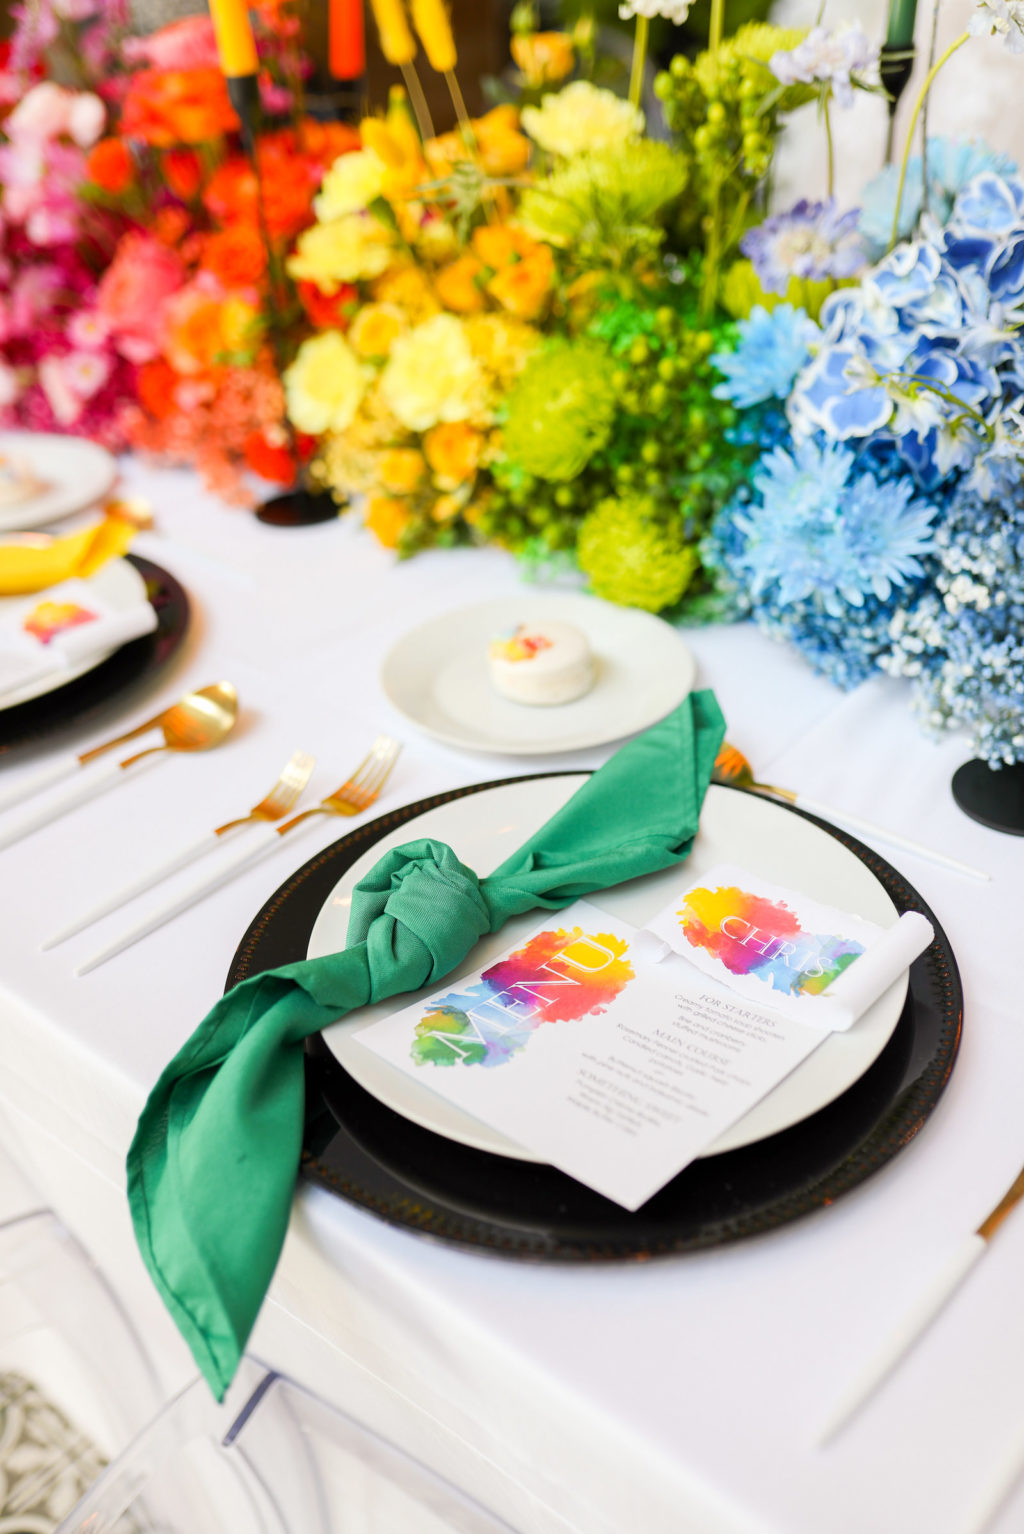 Modern Gay LGBTQ+ Pride Colorful Modern Rainbow Wedding Reception Decor, Green Napkin Linen, Rainbow Watercolor Menu Stationery, Black Charger, Blue, Green, Yellow, Orange and Red Flower Long Centerpiece and Candlesticks   Tampa Bay Wedding Planner Stephany Perry Events